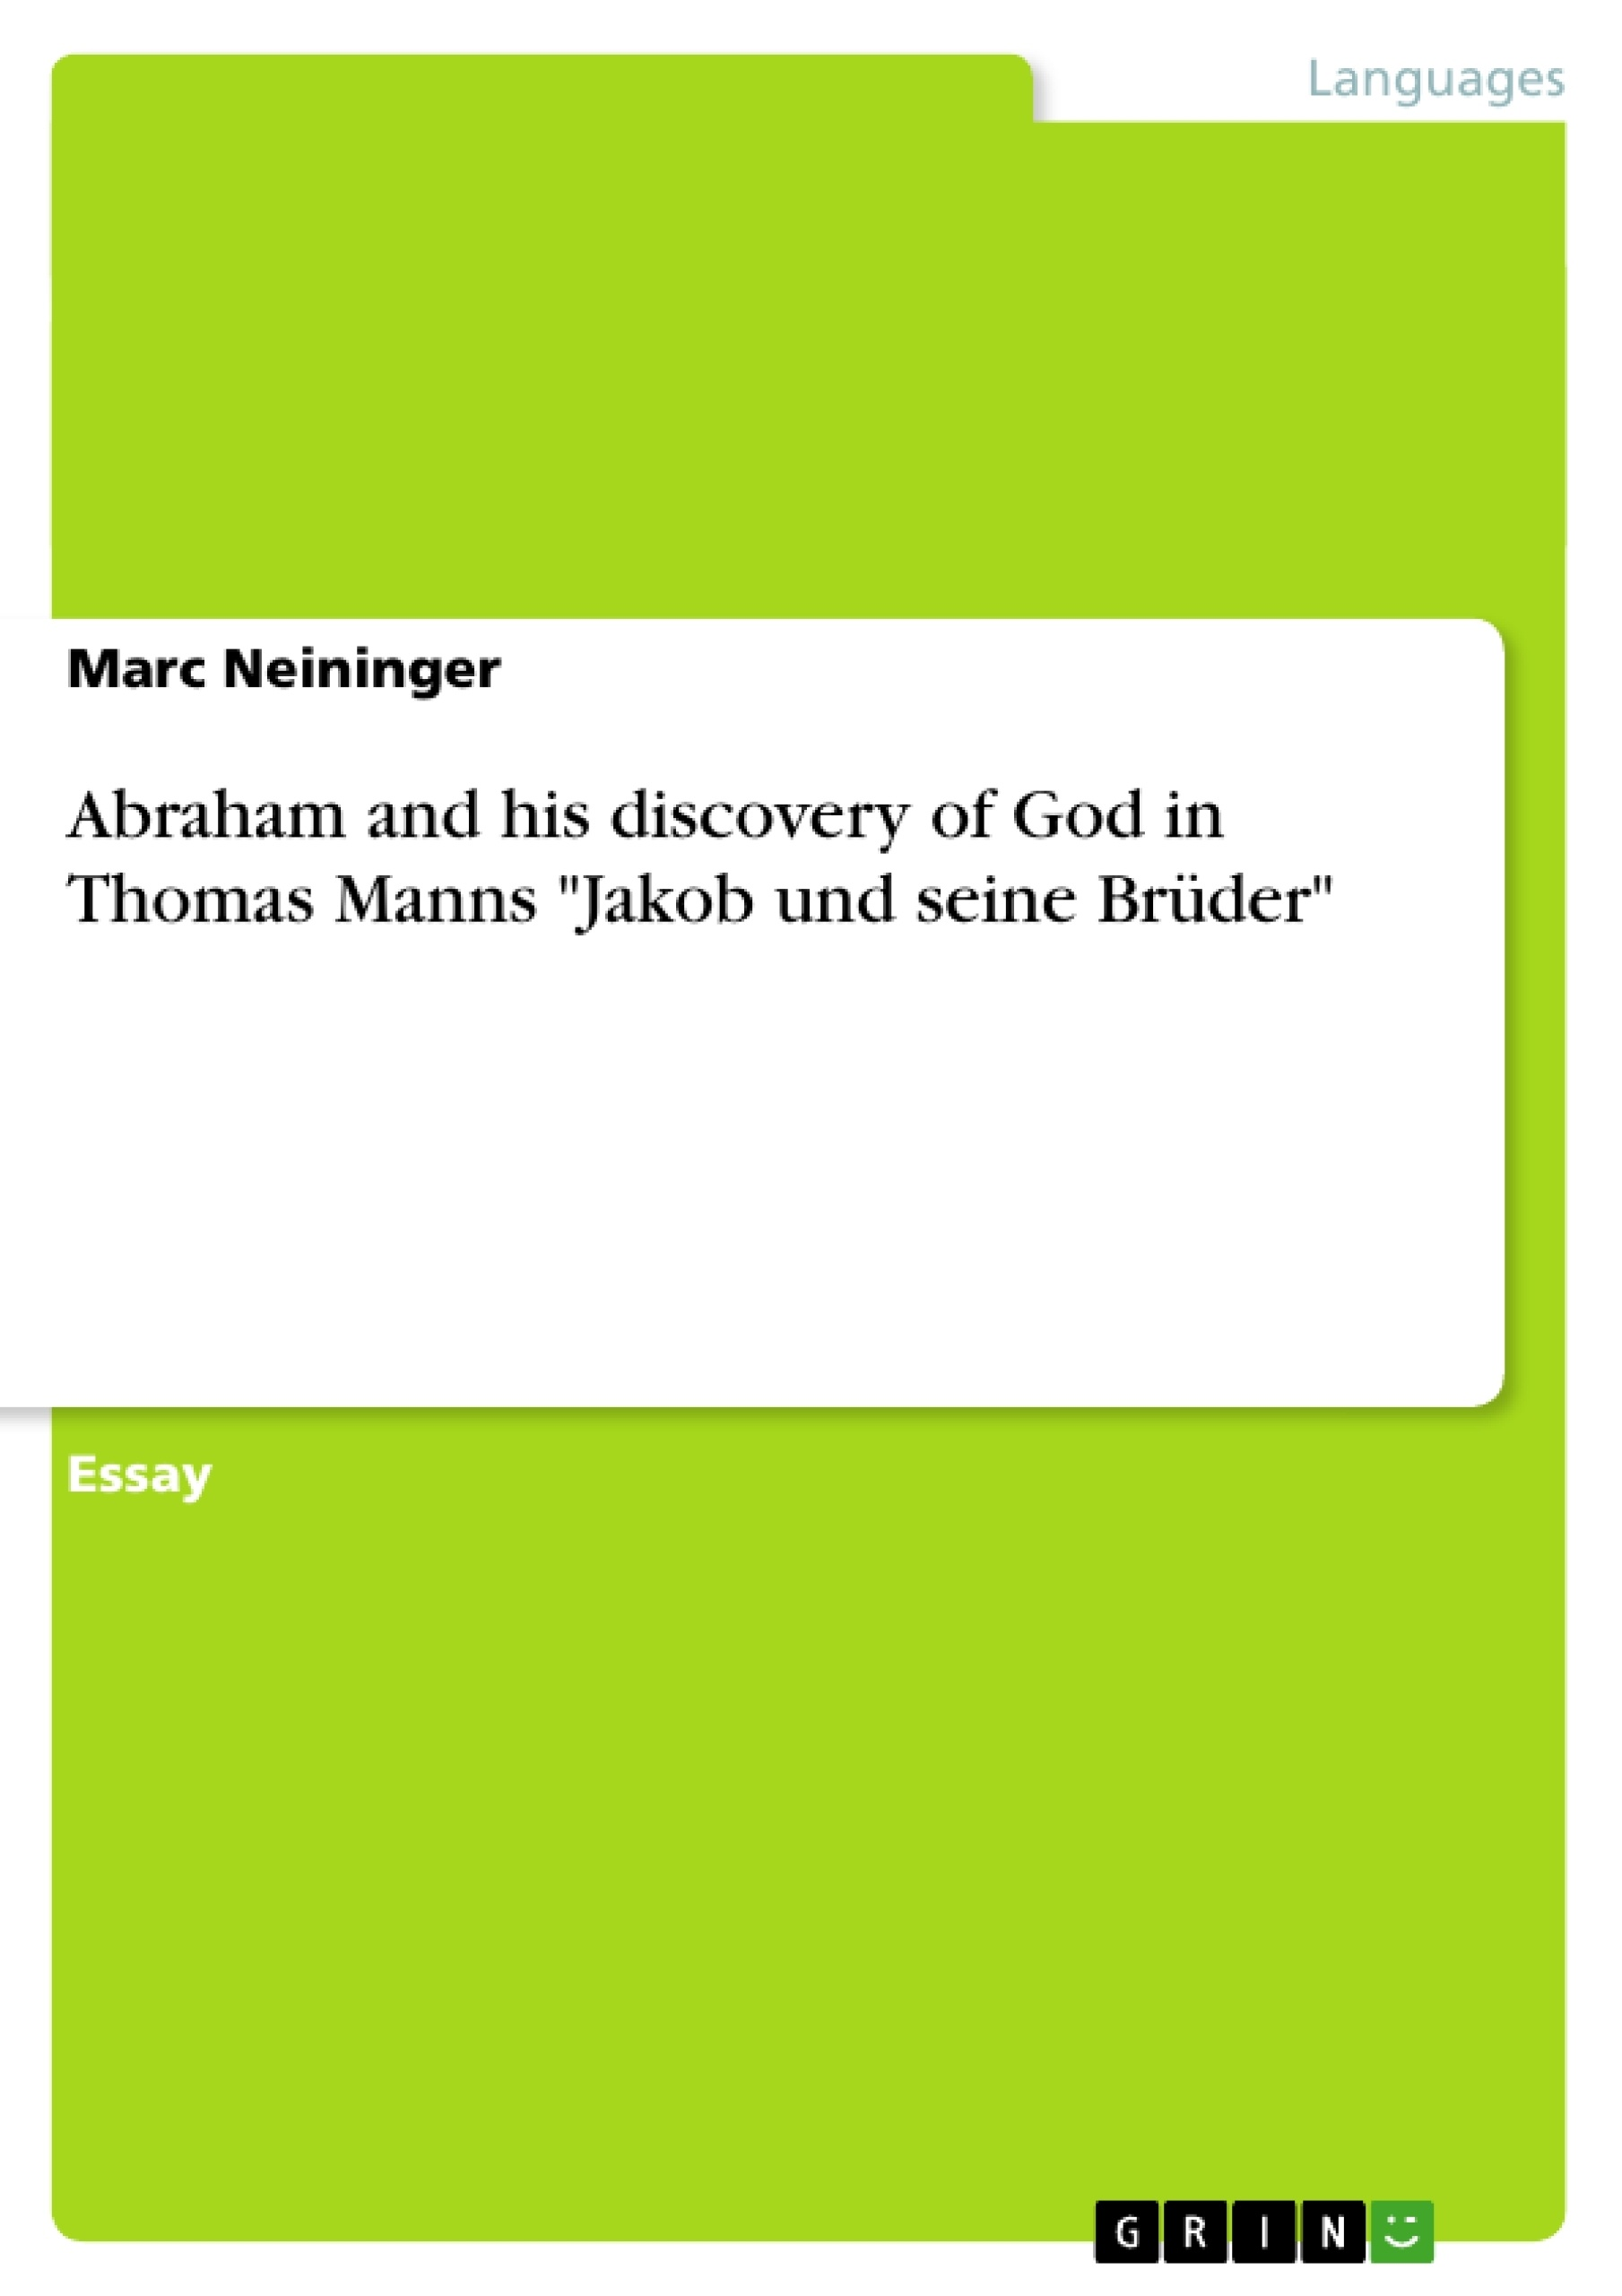 """Title: Abraham and his discovery of God in Thomas Manns """"Jakob und seine Brüder"""""""